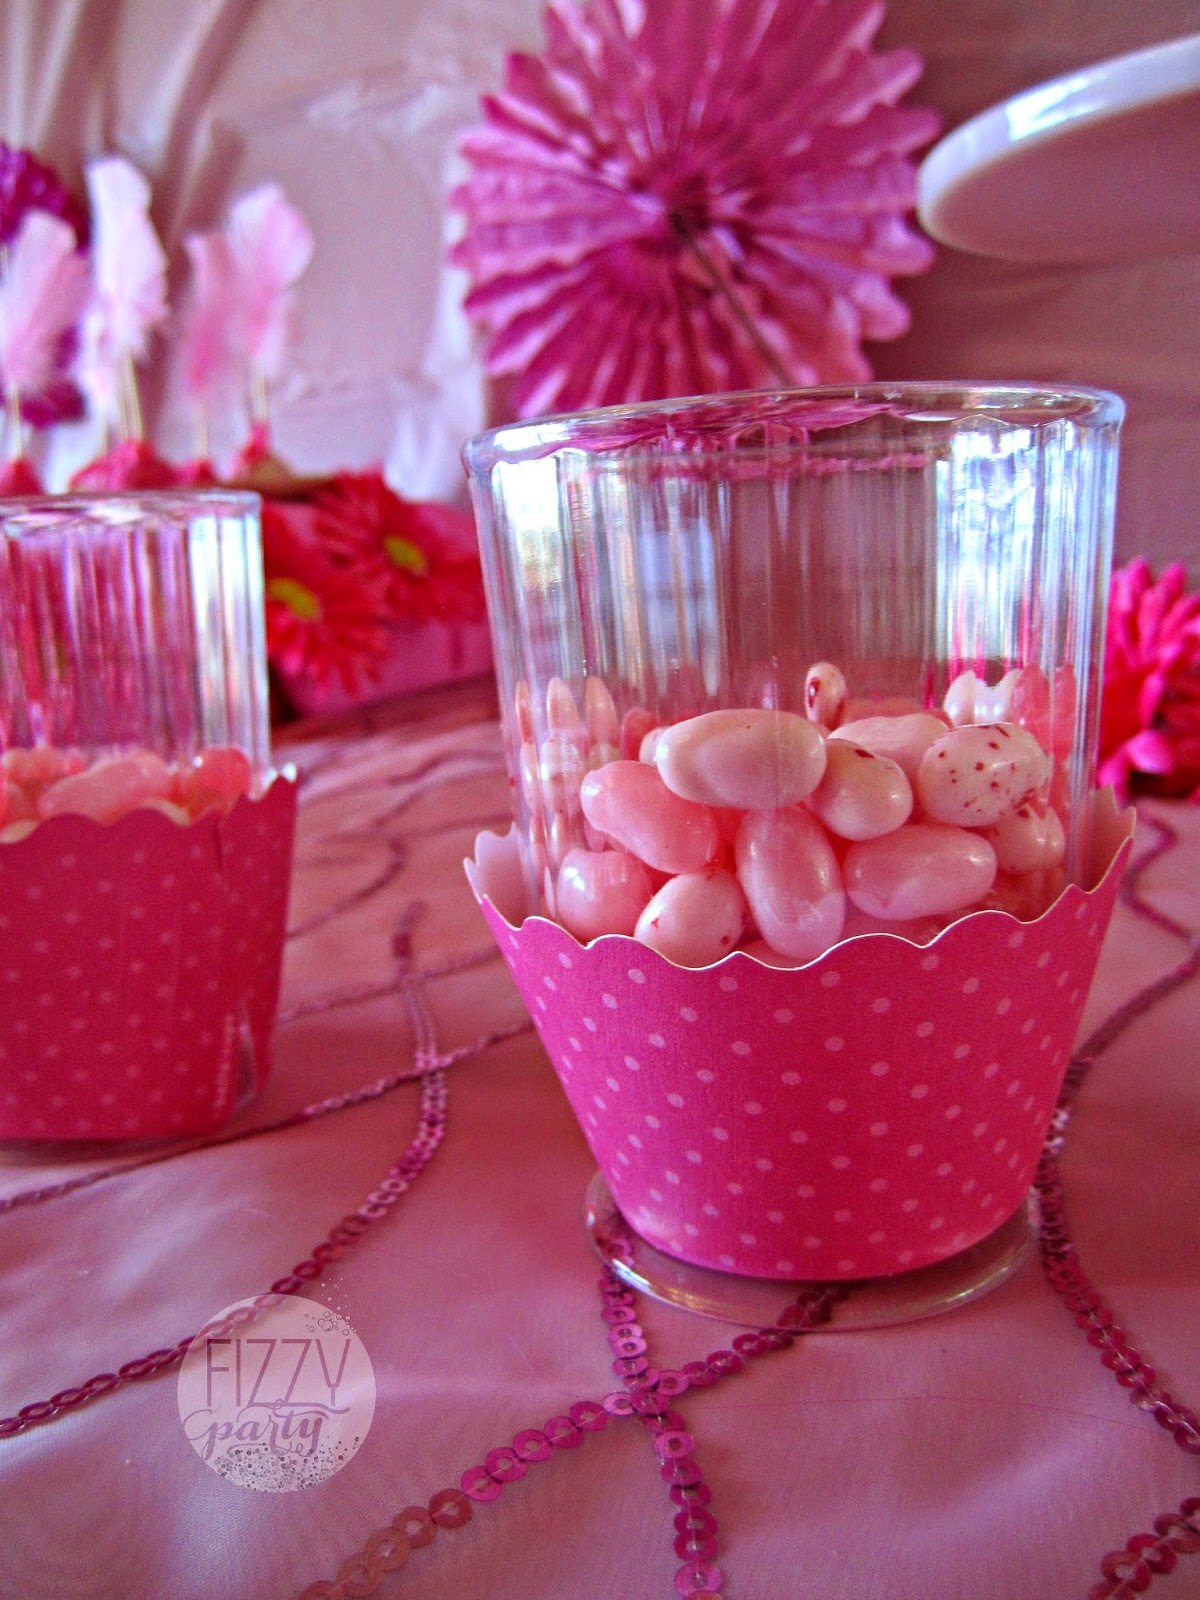 Fizzy Party 50 Shades of Pink